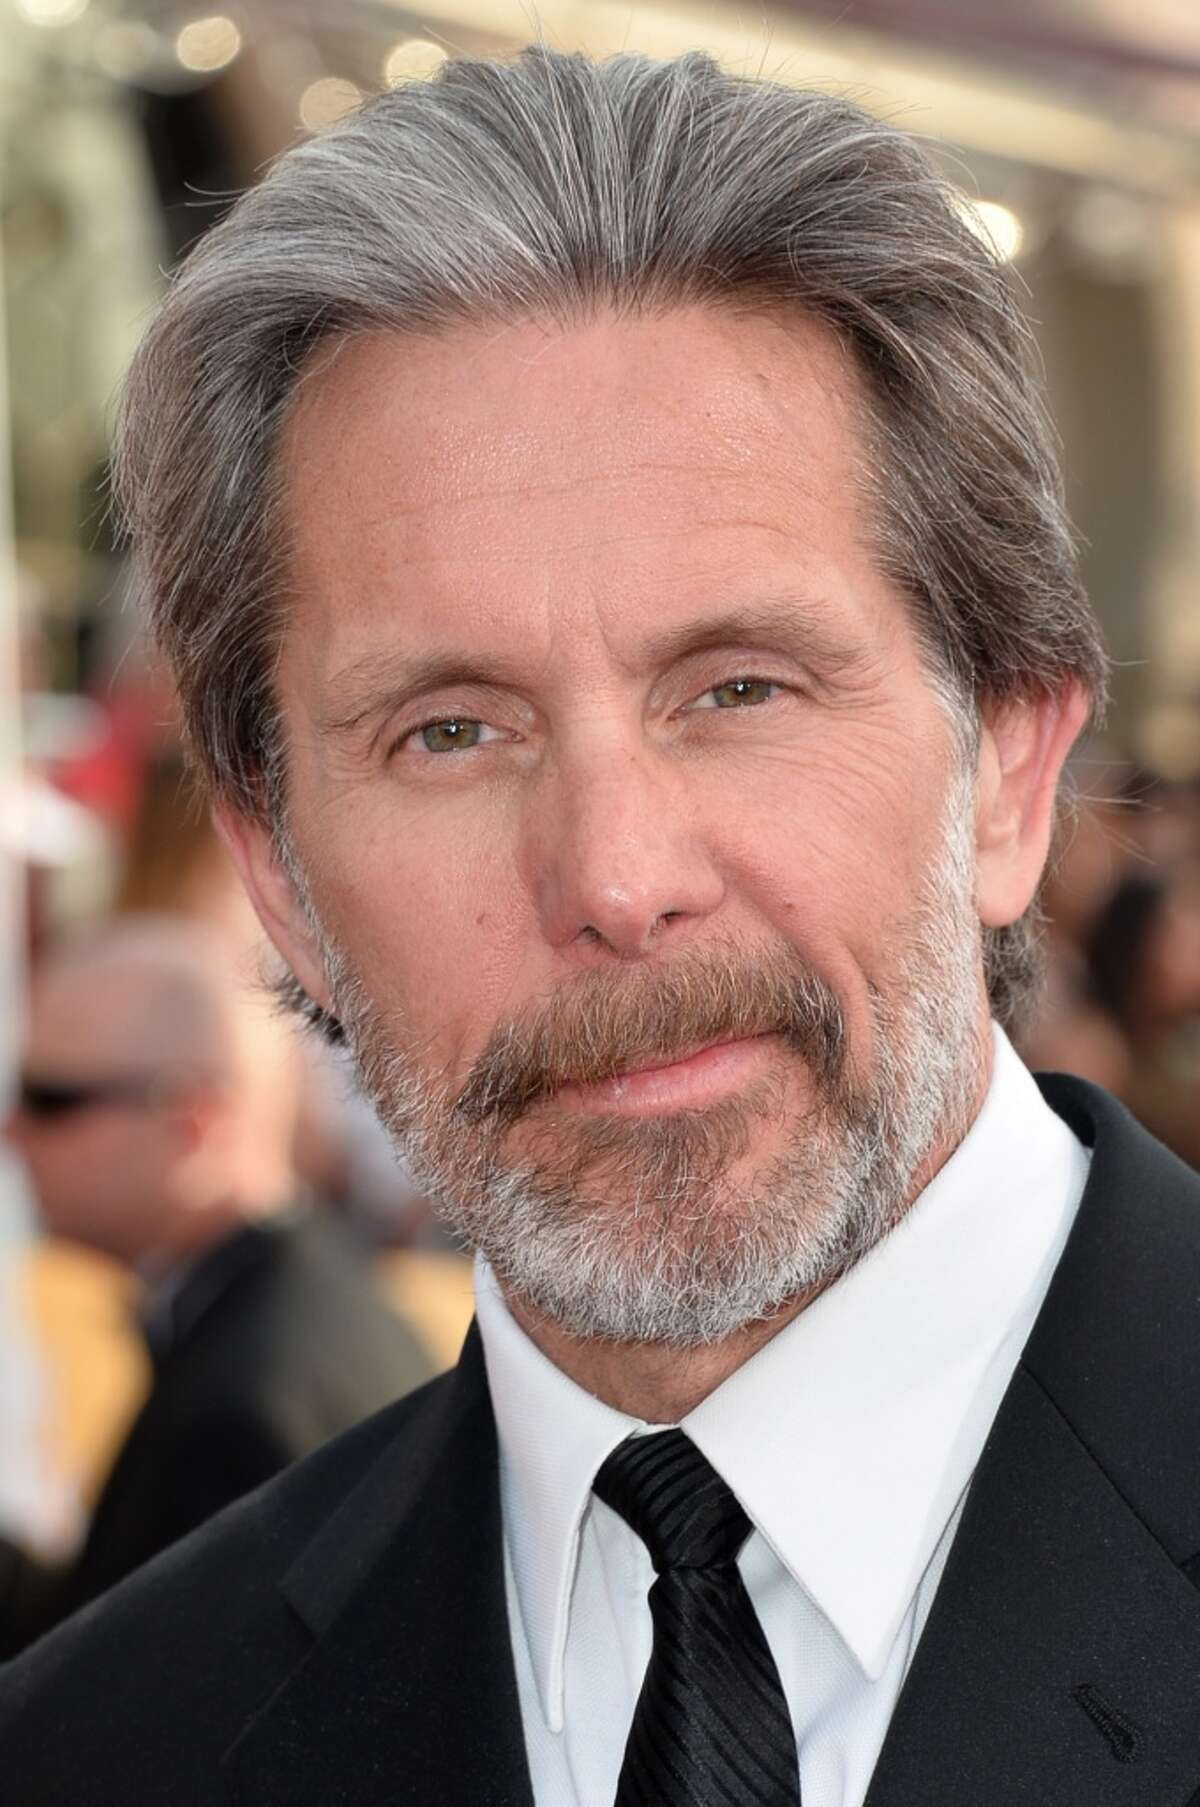 Ted Jones Pineapple Express Played by: Gary Cole Best line: